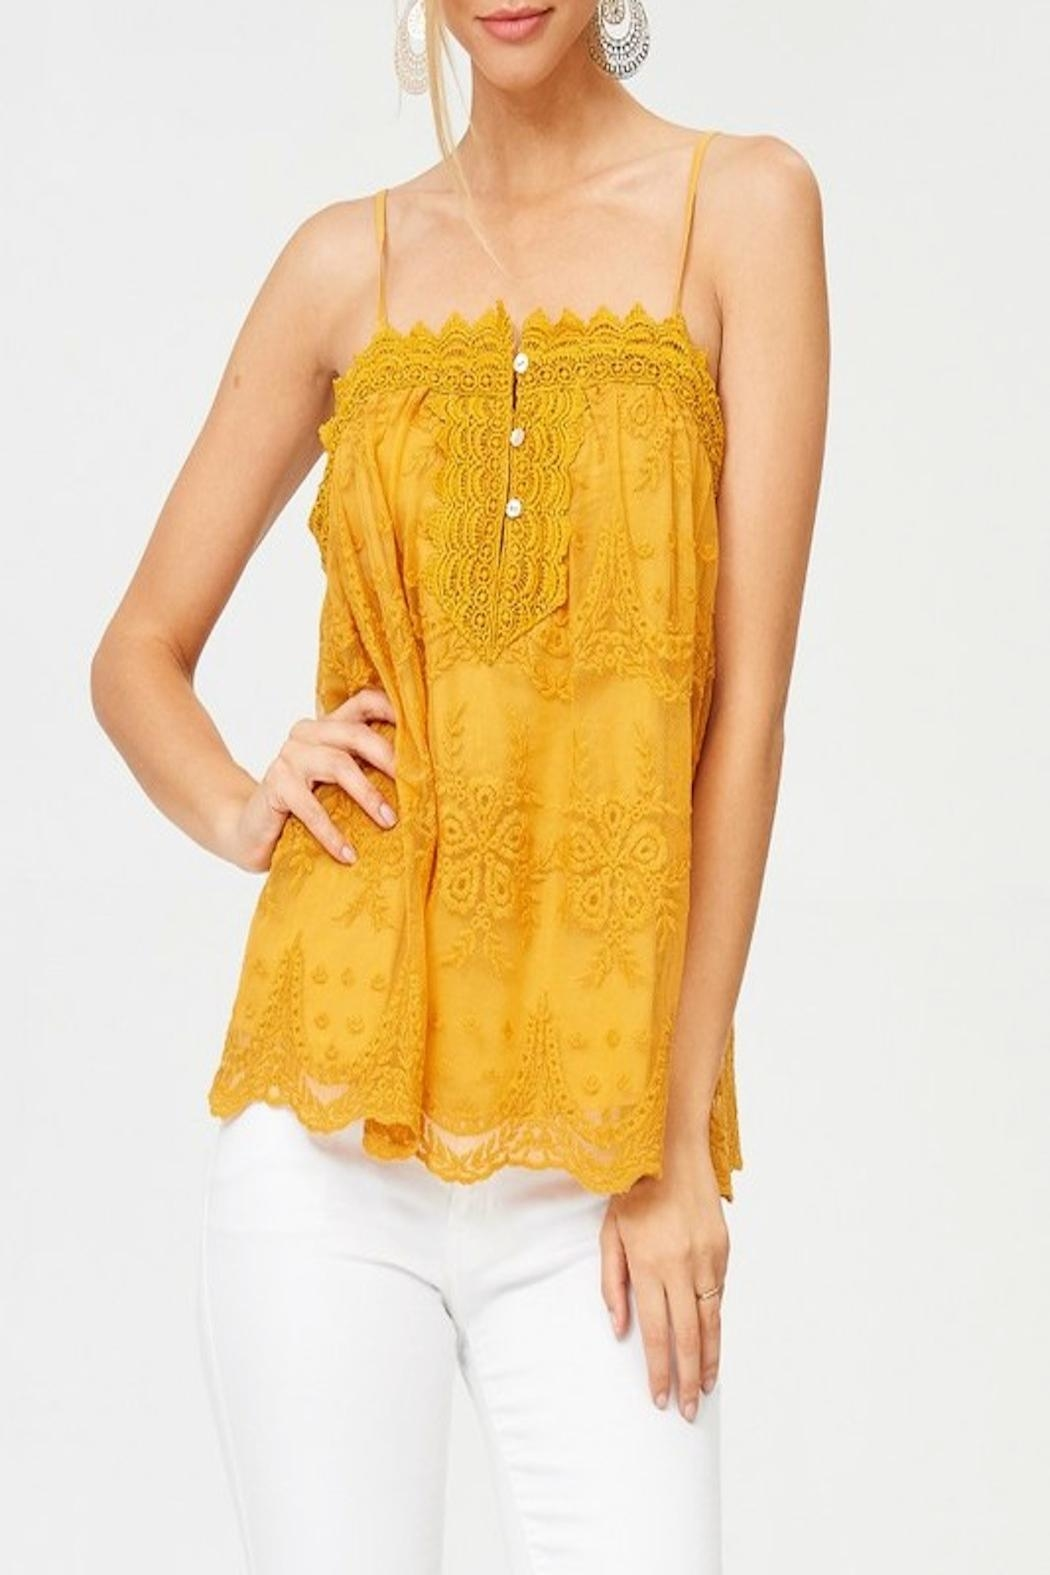 Apricot Lane St. Cloud Lace Button Up Top - Front Cropped Image